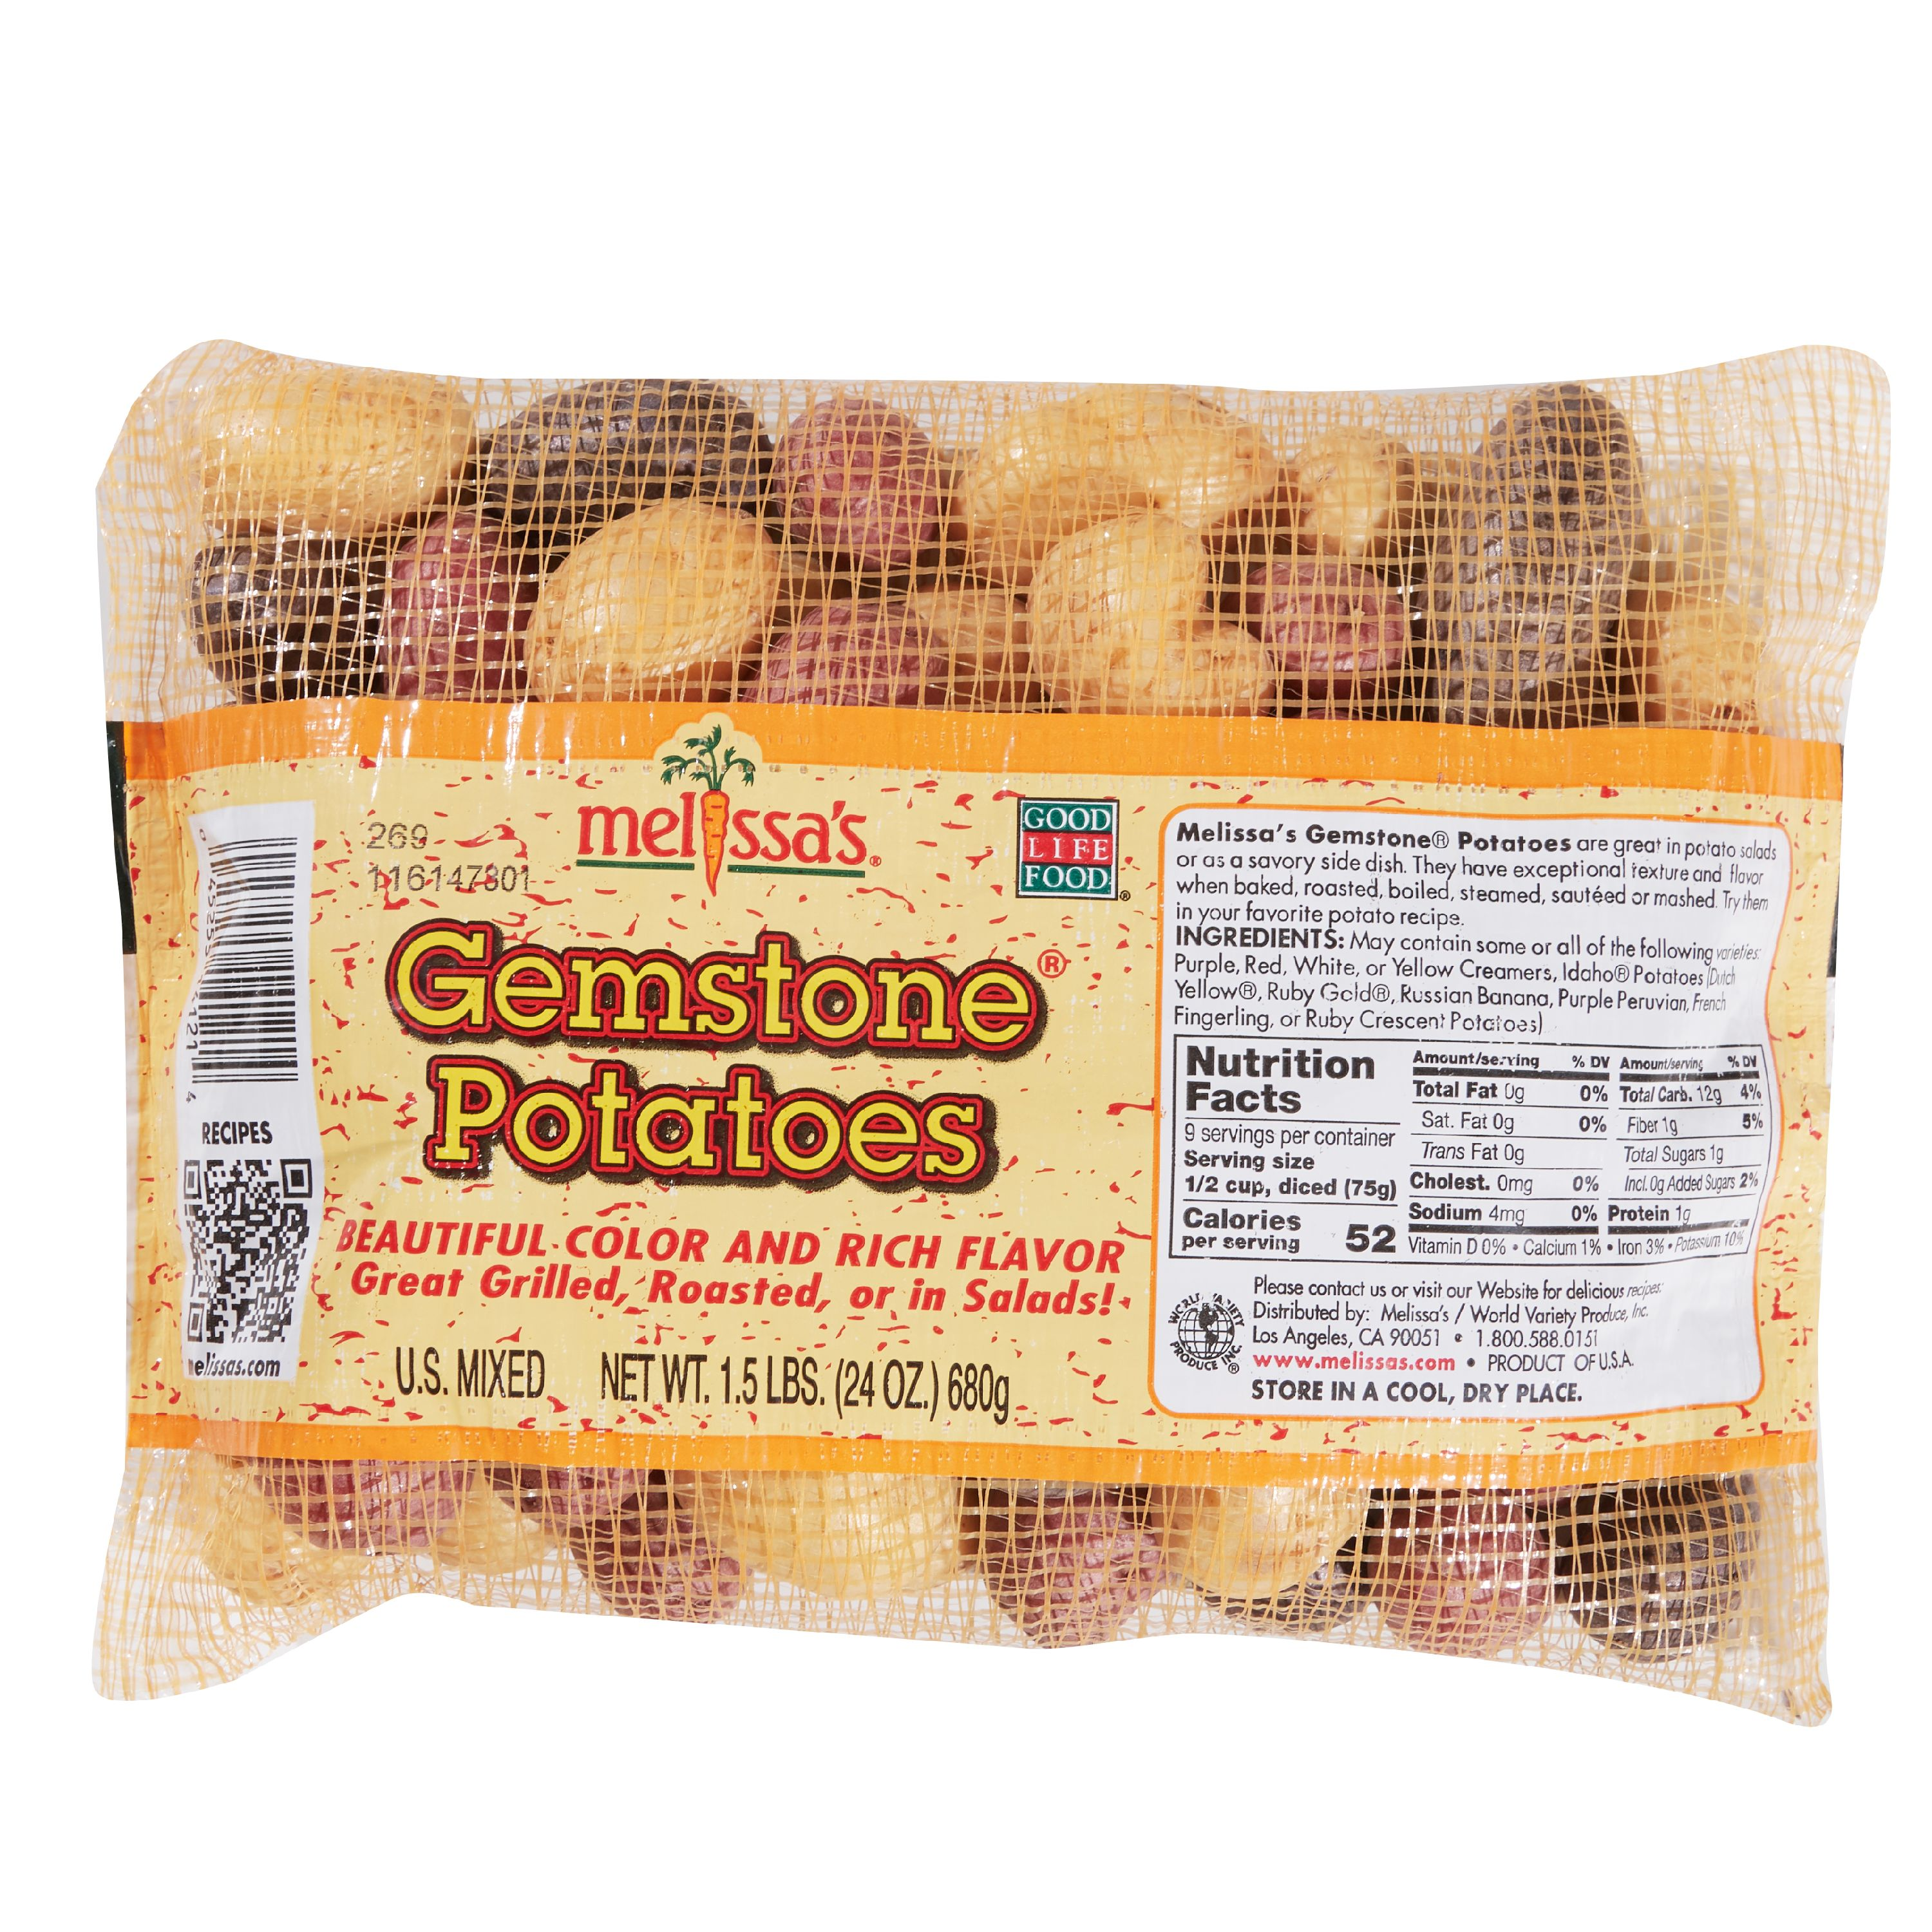 Gemstone Medley Baby Potatoes, 1.5 lb Bag